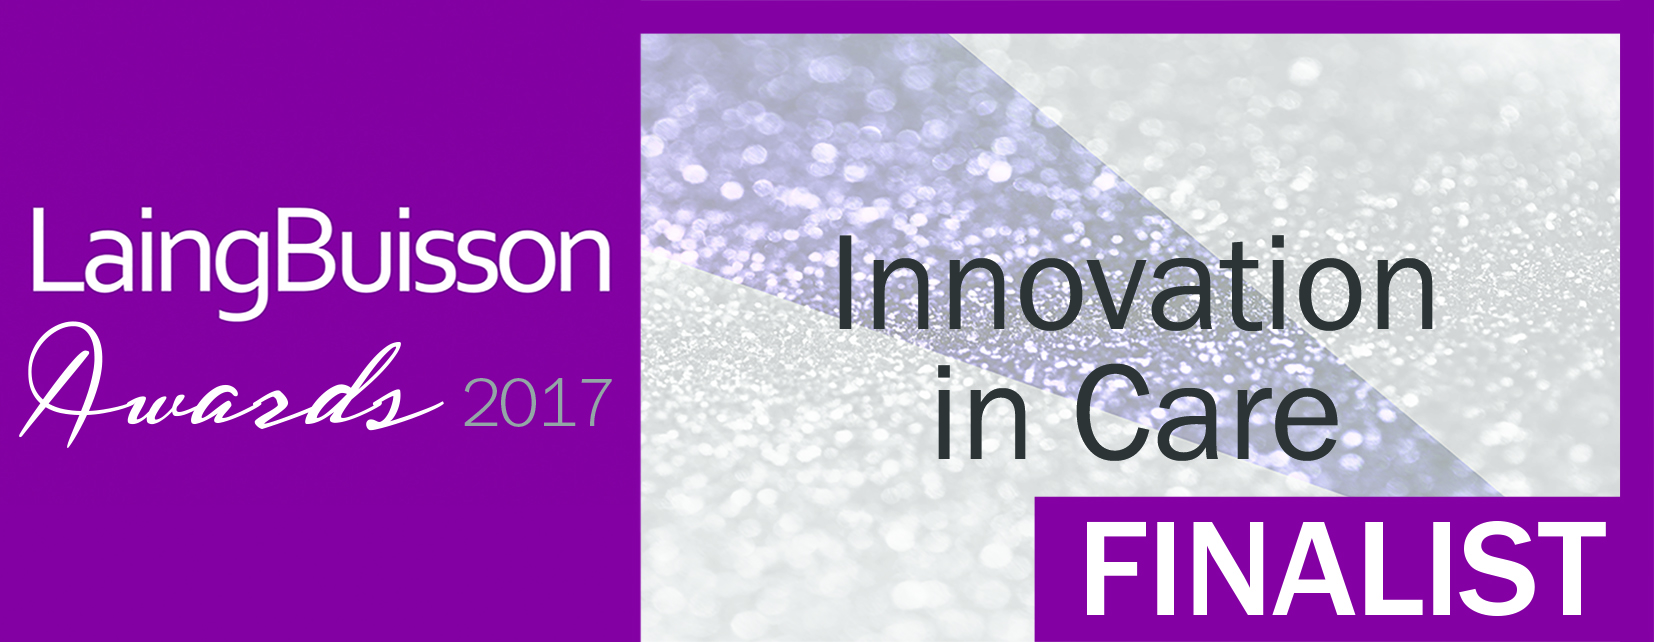 LaingBuisson Innovation in Care award logo